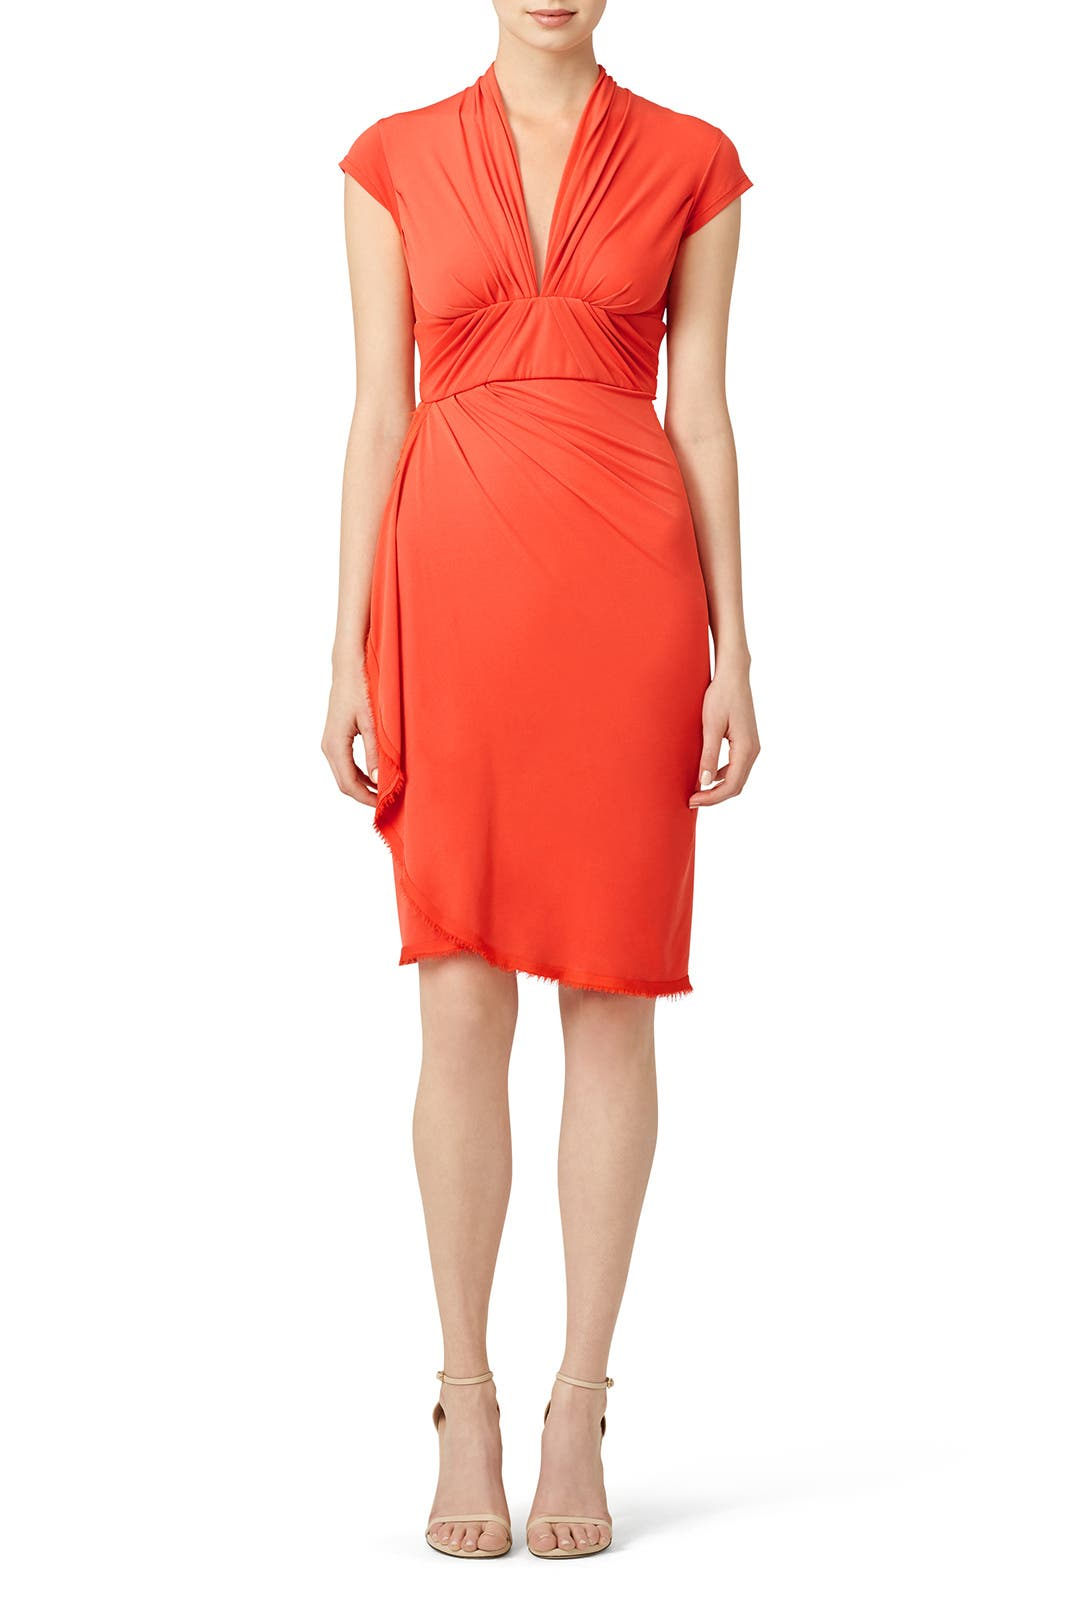 Here Comes the Sun Dress by Z Spoke Zac Posen